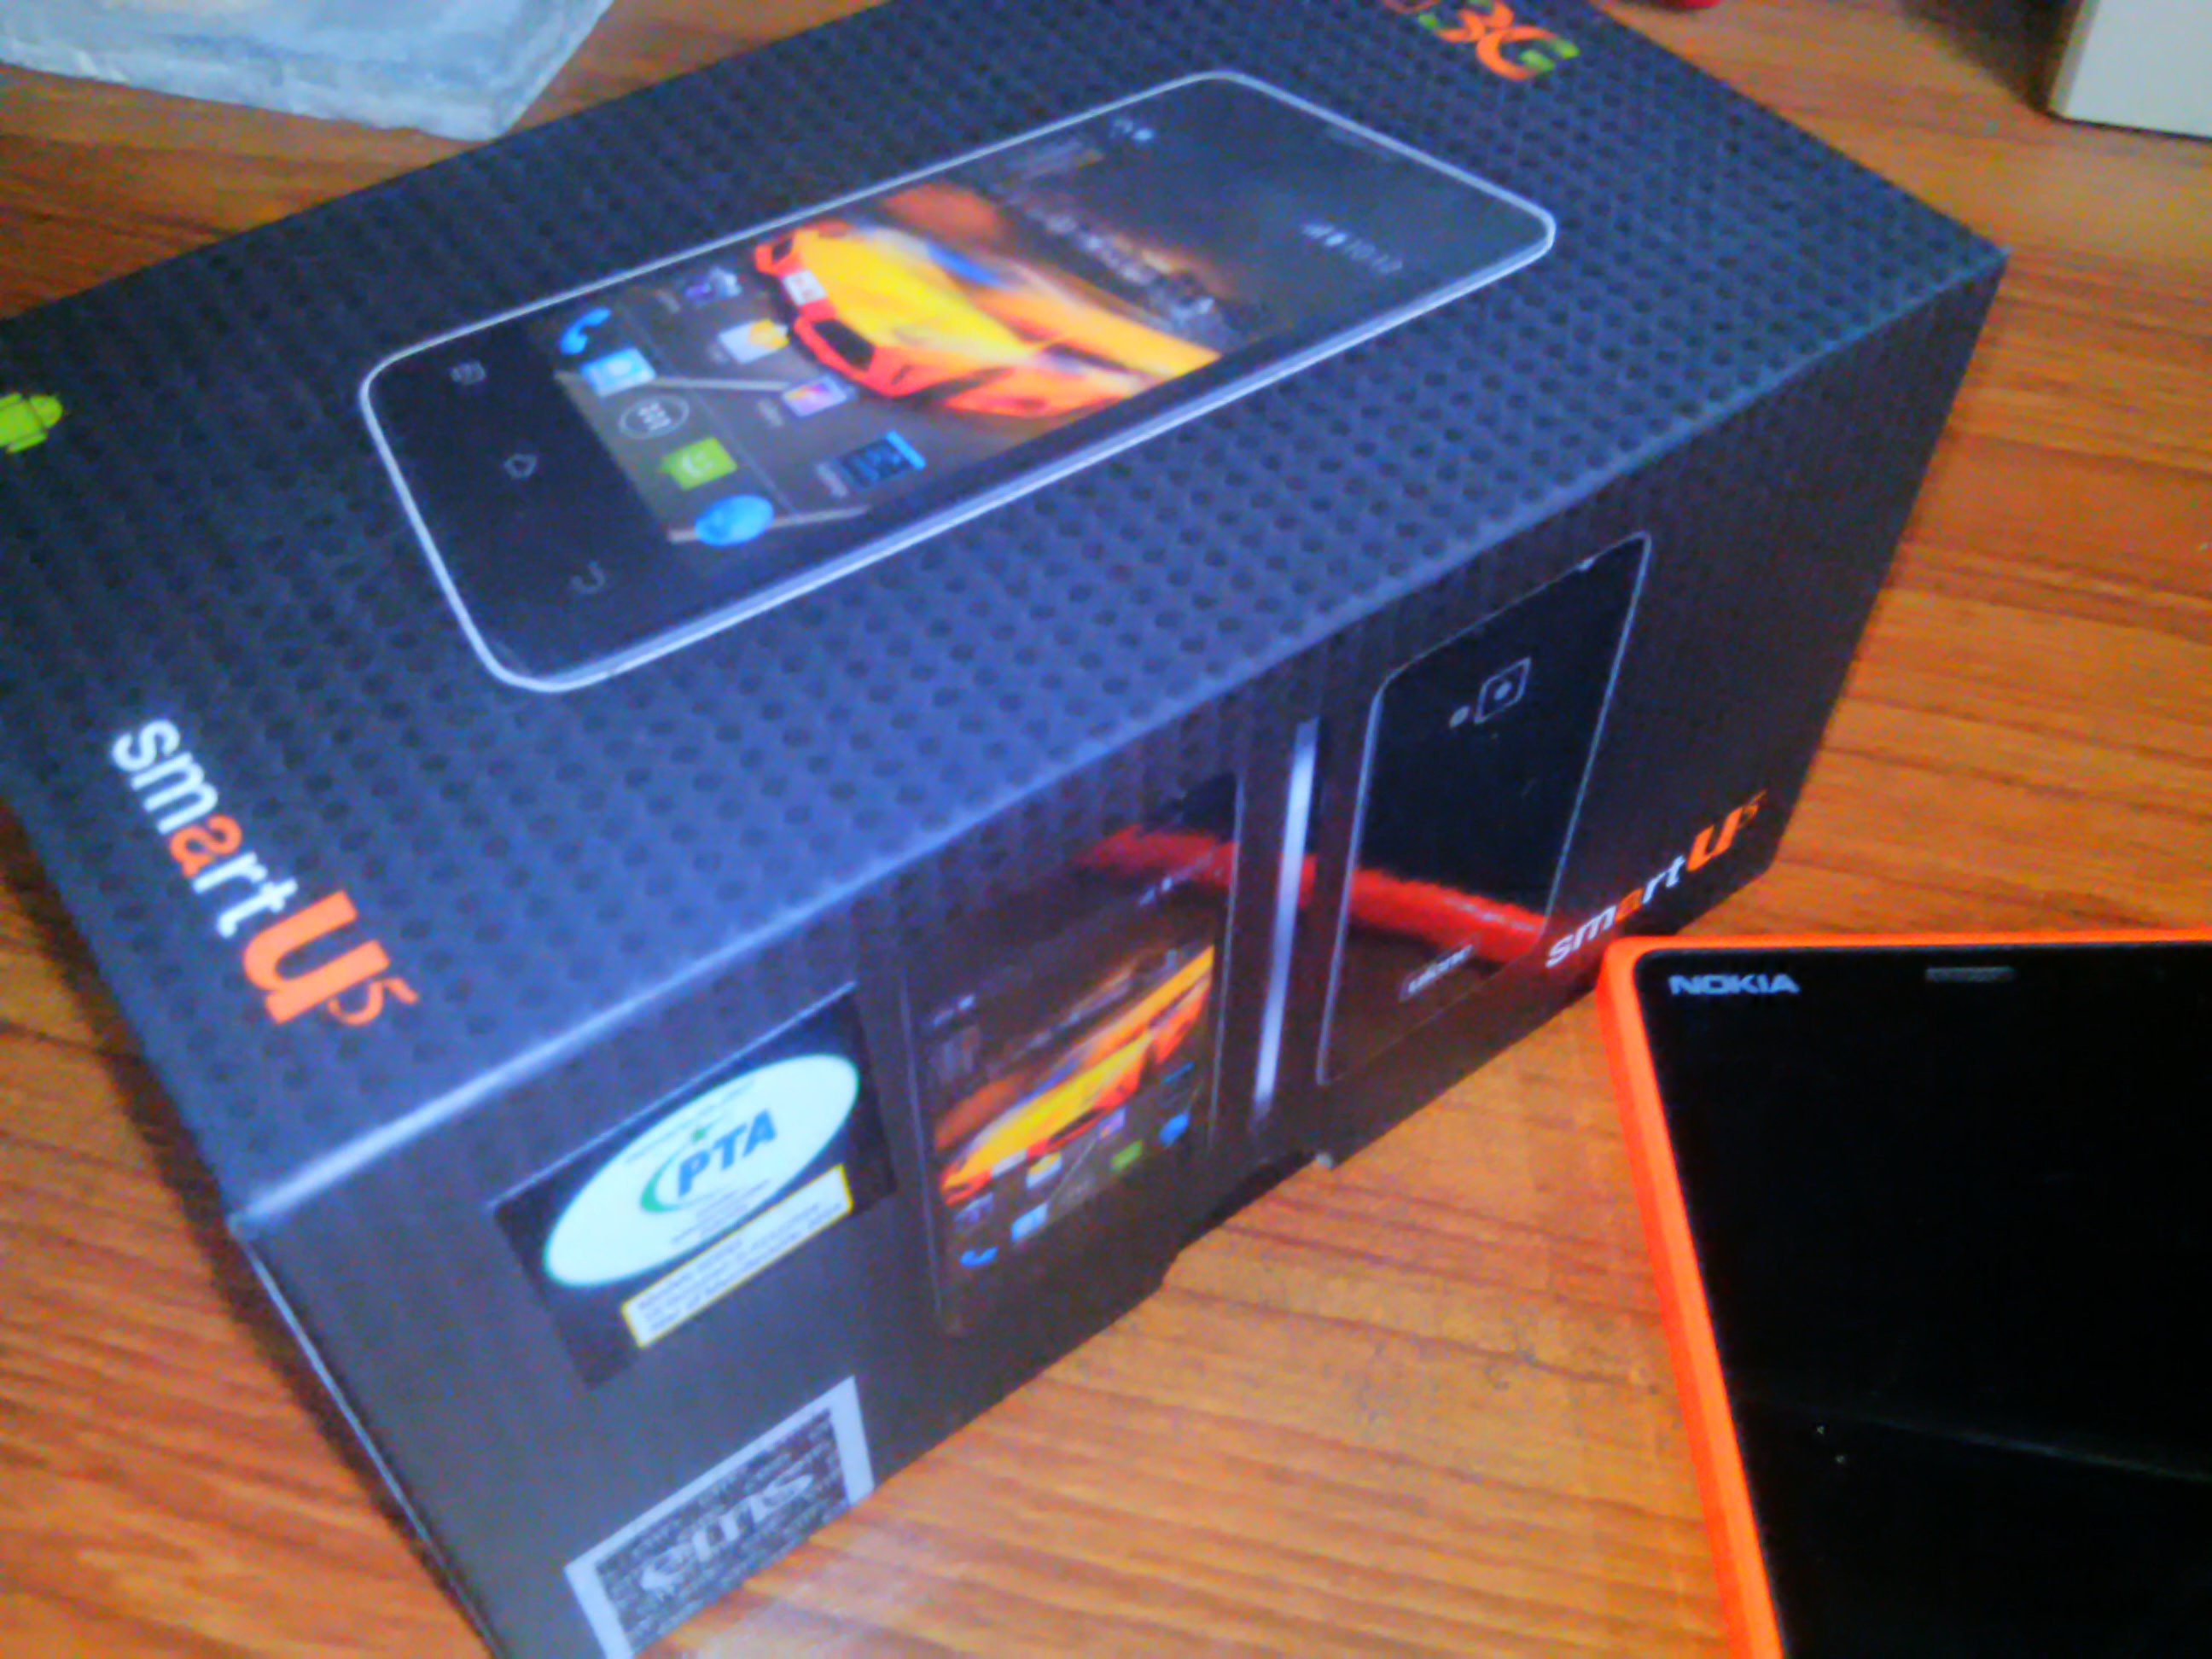 10 Reasons to Buy Ufone Smart U5